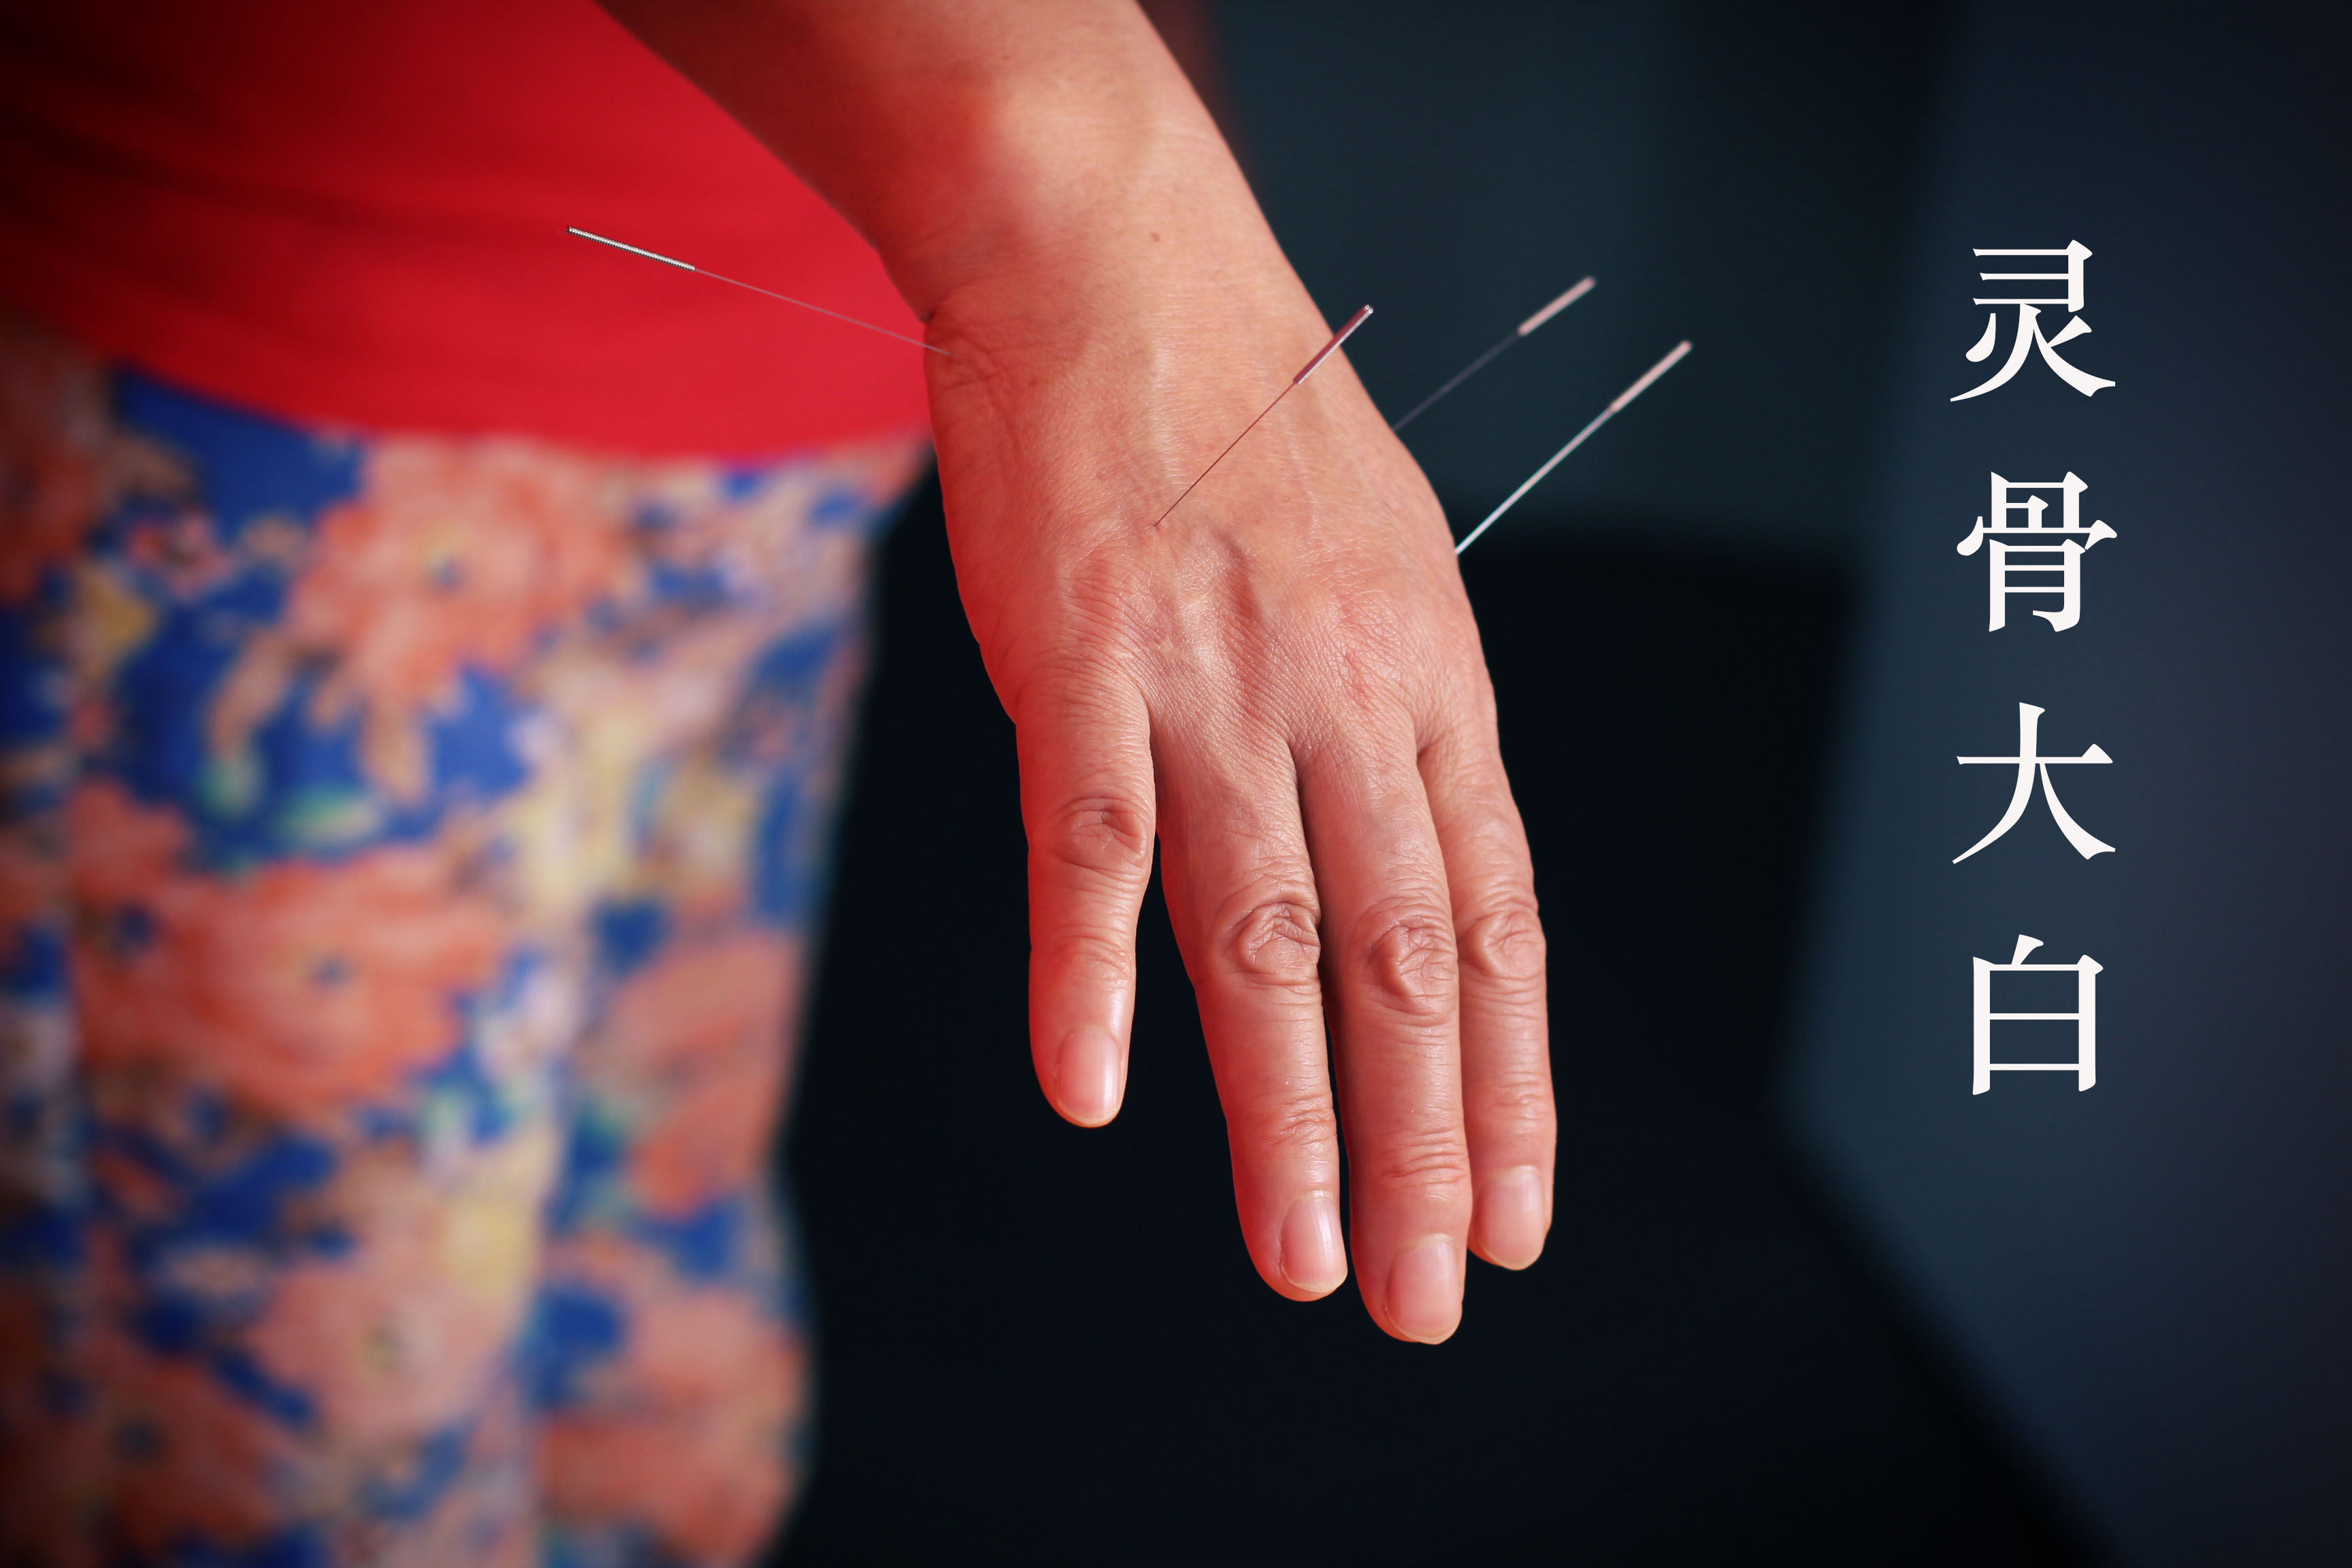 Acupuncture on the hand